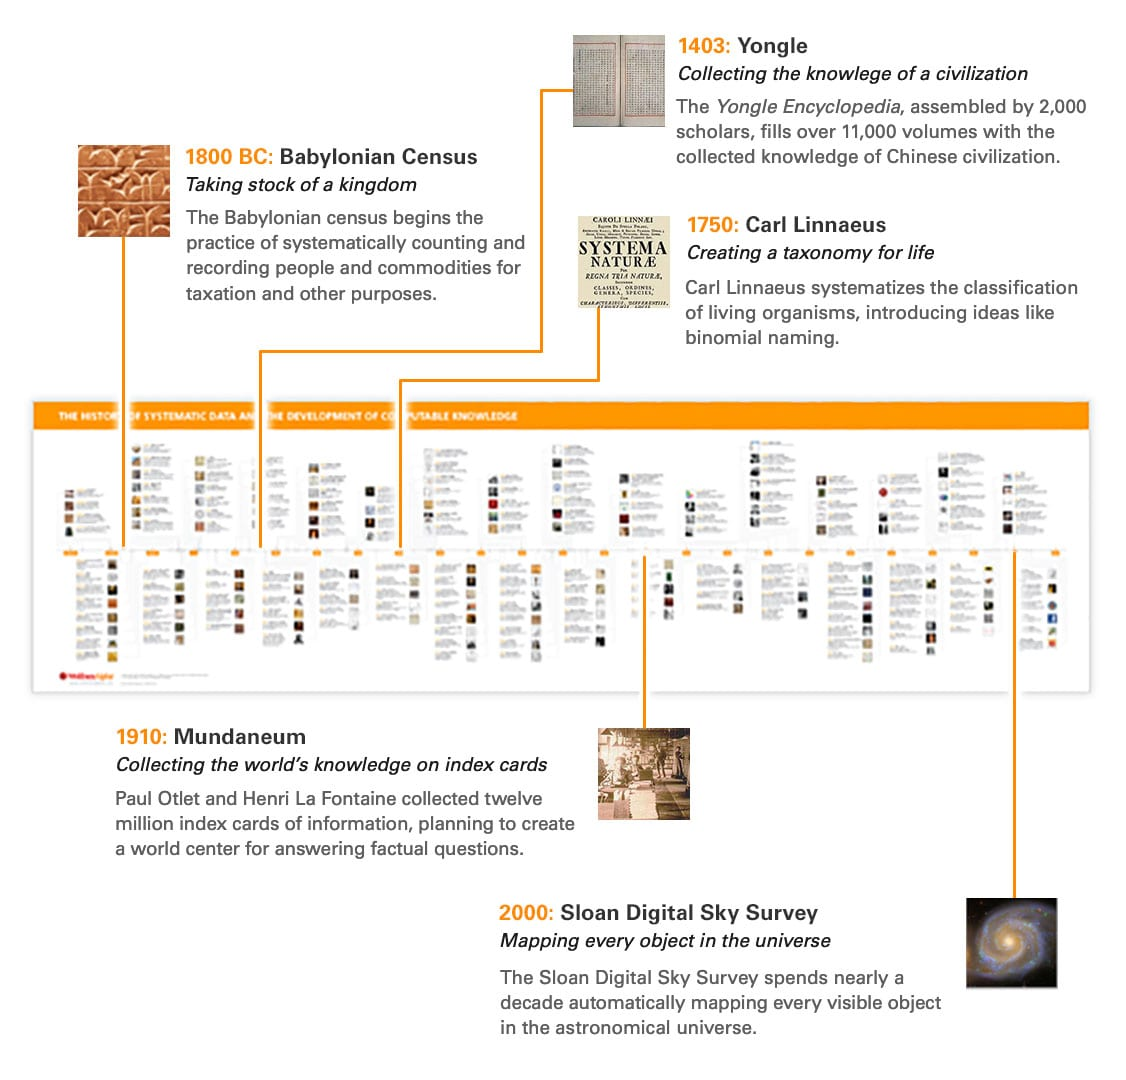 The life and times of Stephen Wolfram. 2011: Fitting into a timeline of systematic data